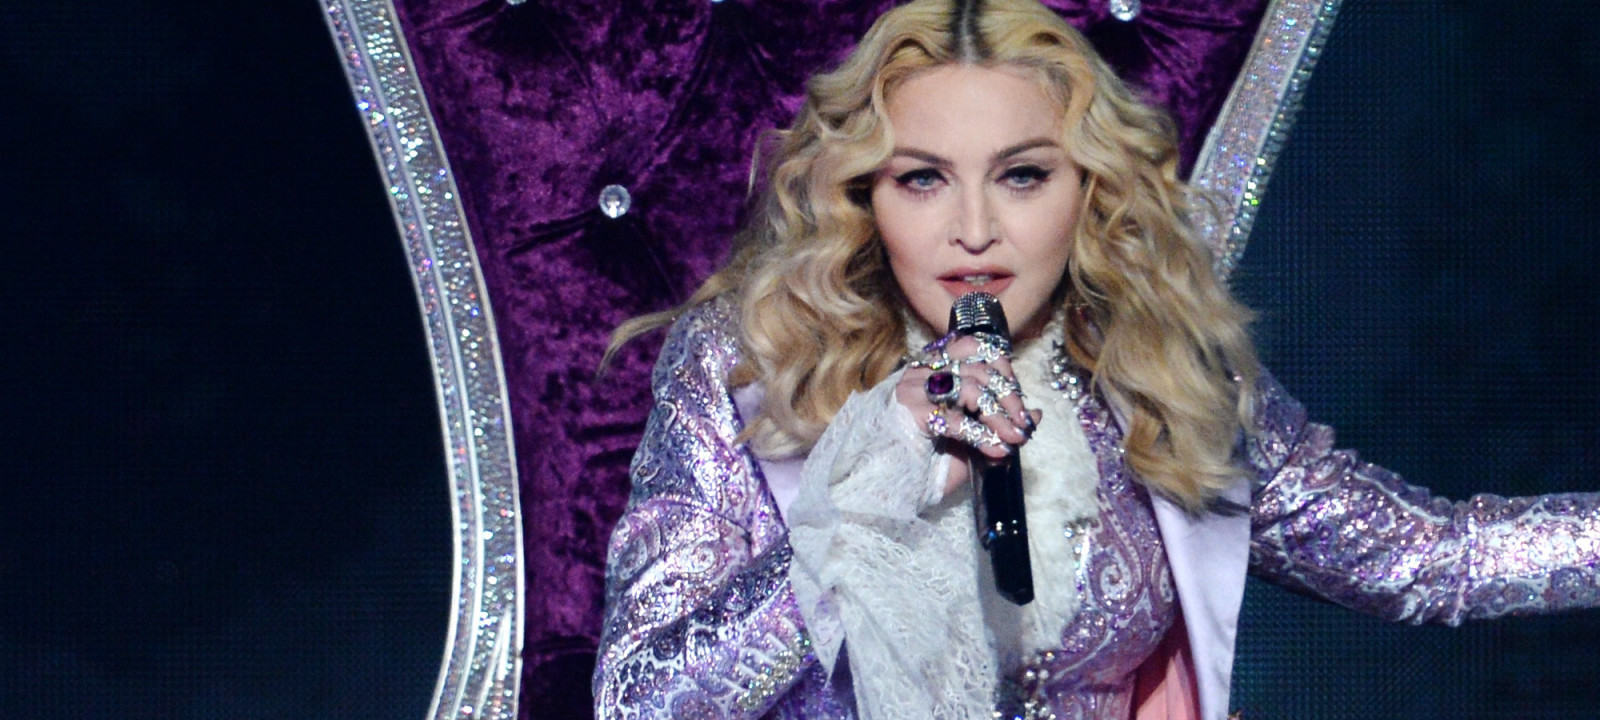 Recording artist Madonna performs a tribute to Prince onstage during the 2016 Billboard Music Awards at T-Mobile Arena on May 22, 2016 in Las Vegas, Nevada.